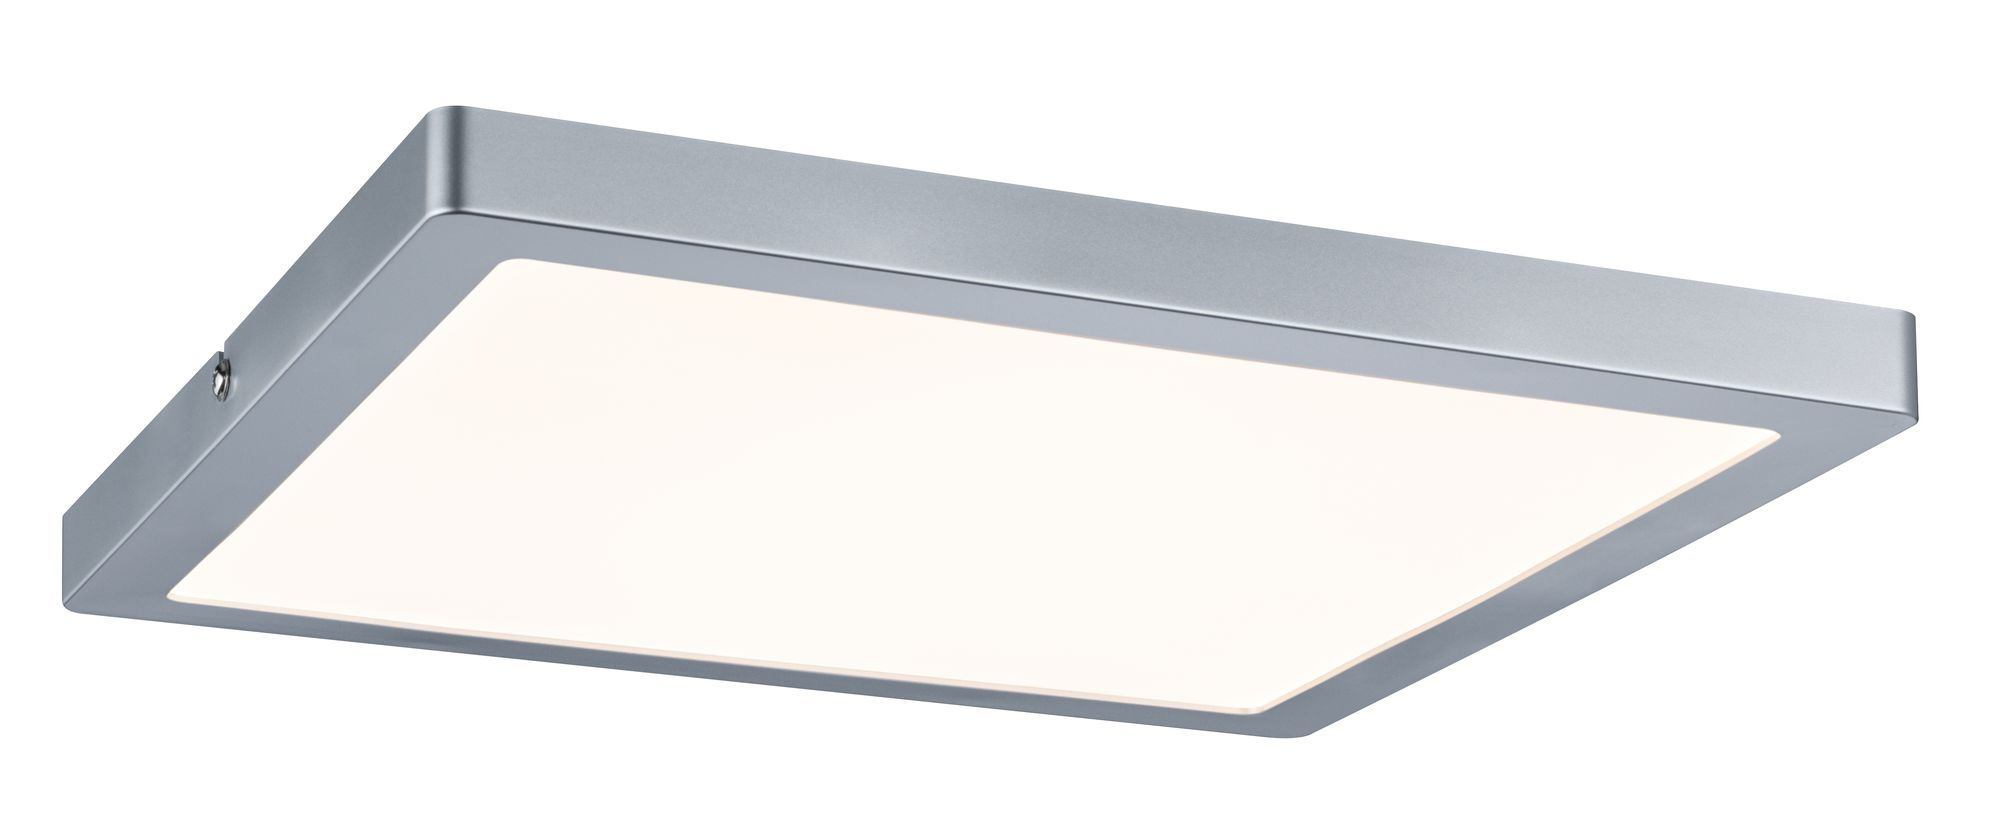 Led Panel Dimmbar Wand Deckenleuchte Atria Led Panel Eckig 24w Chrom Matt